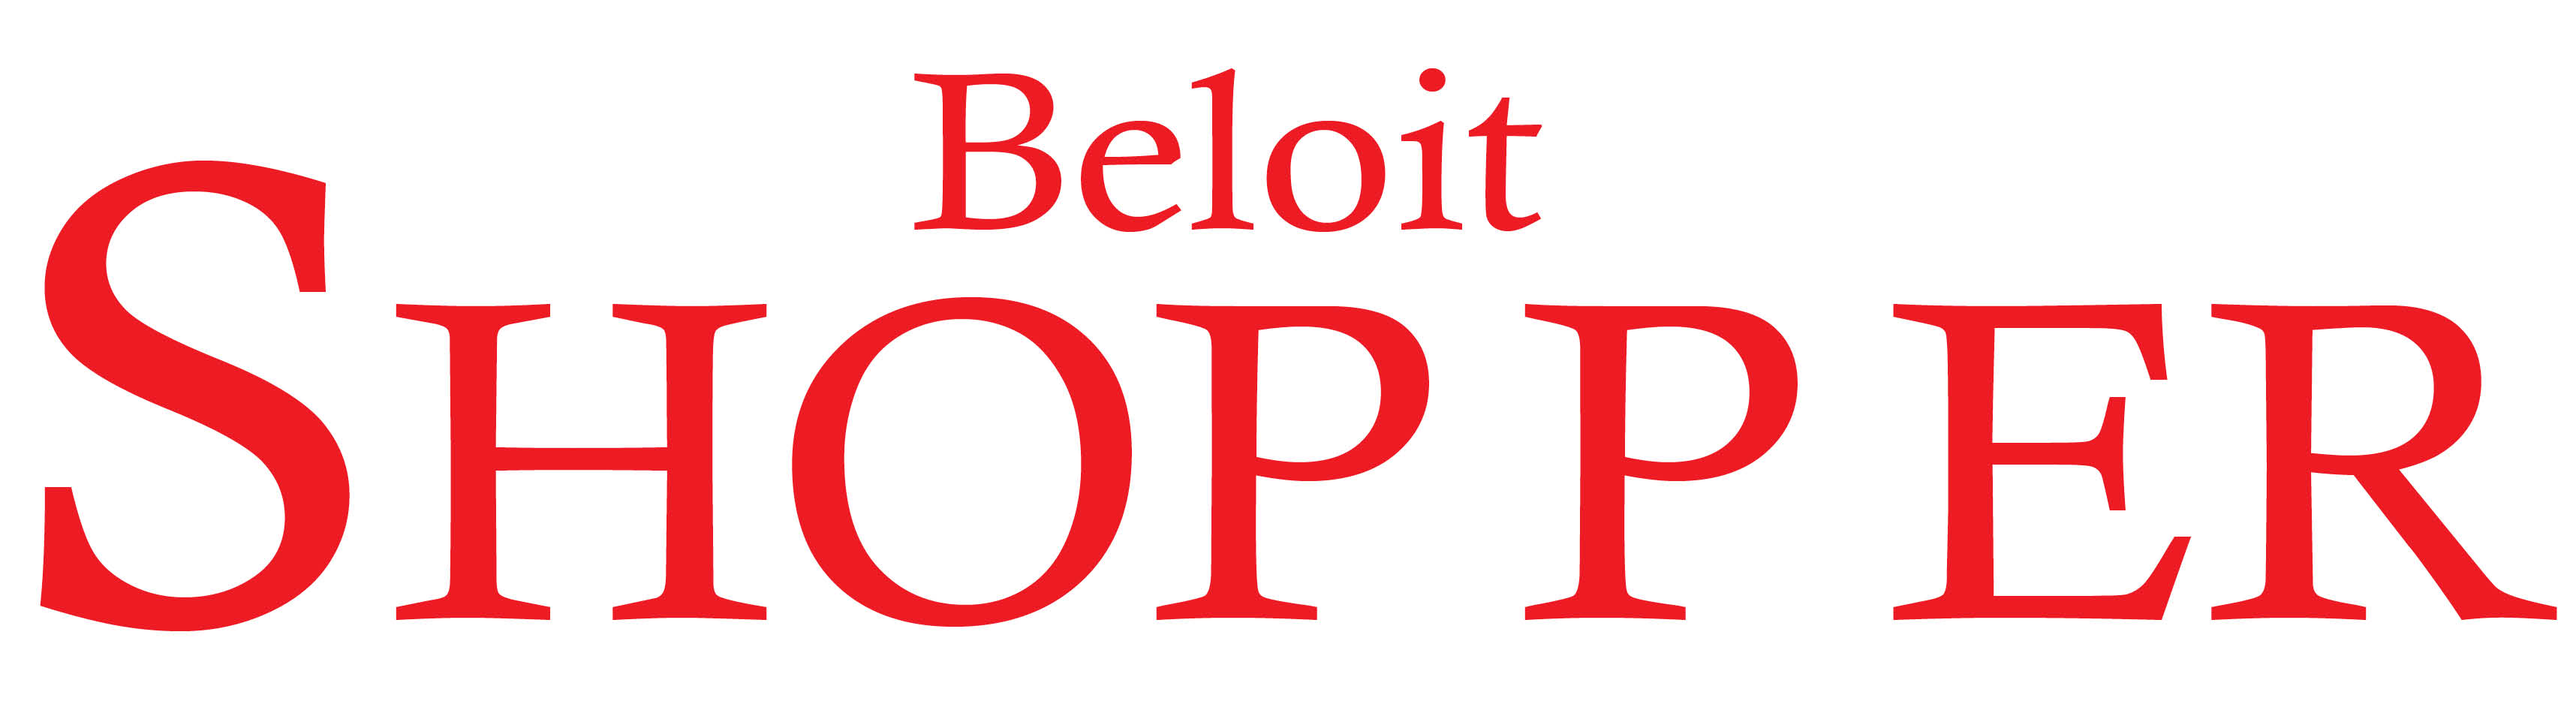 8/16/18 Beloit Shopper